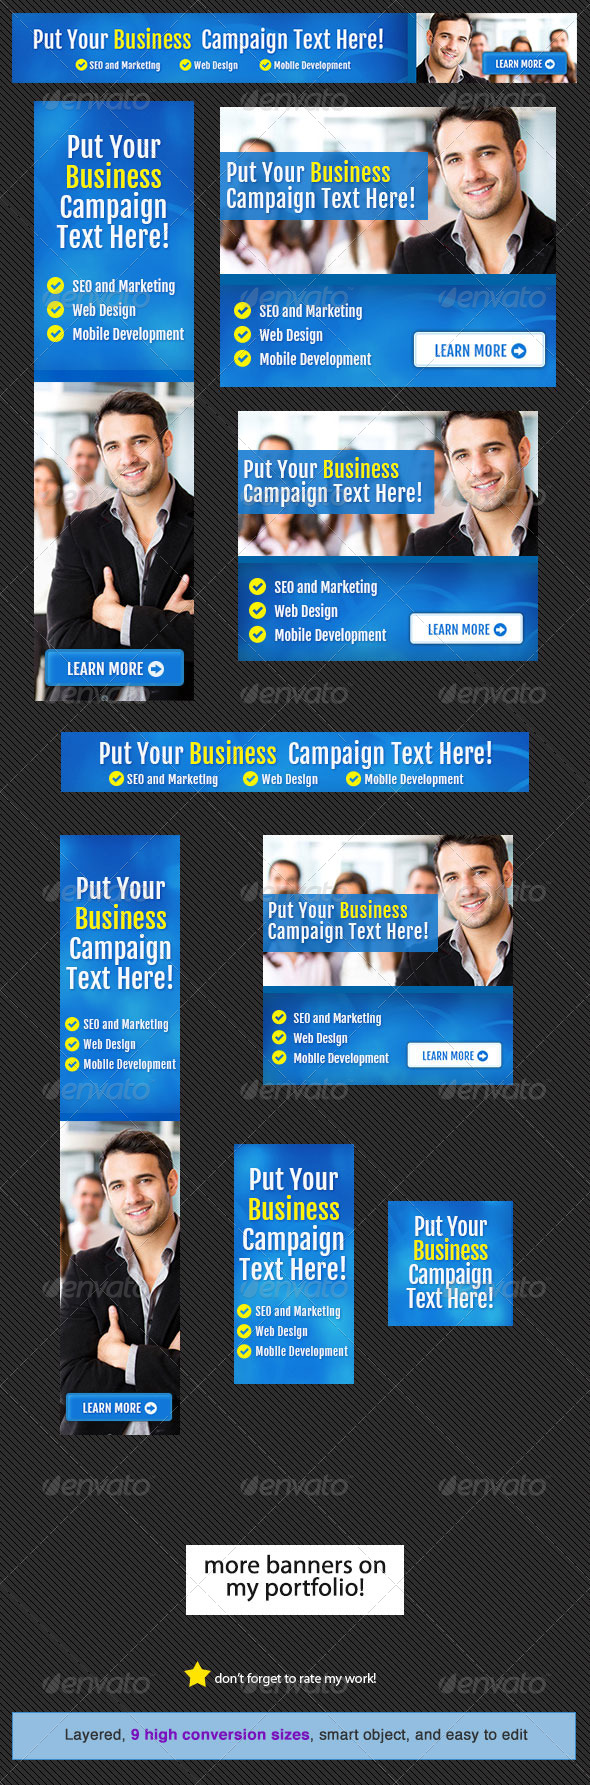 Corporate Web Banner Design Template 14 - Banners & Ads Web Elements